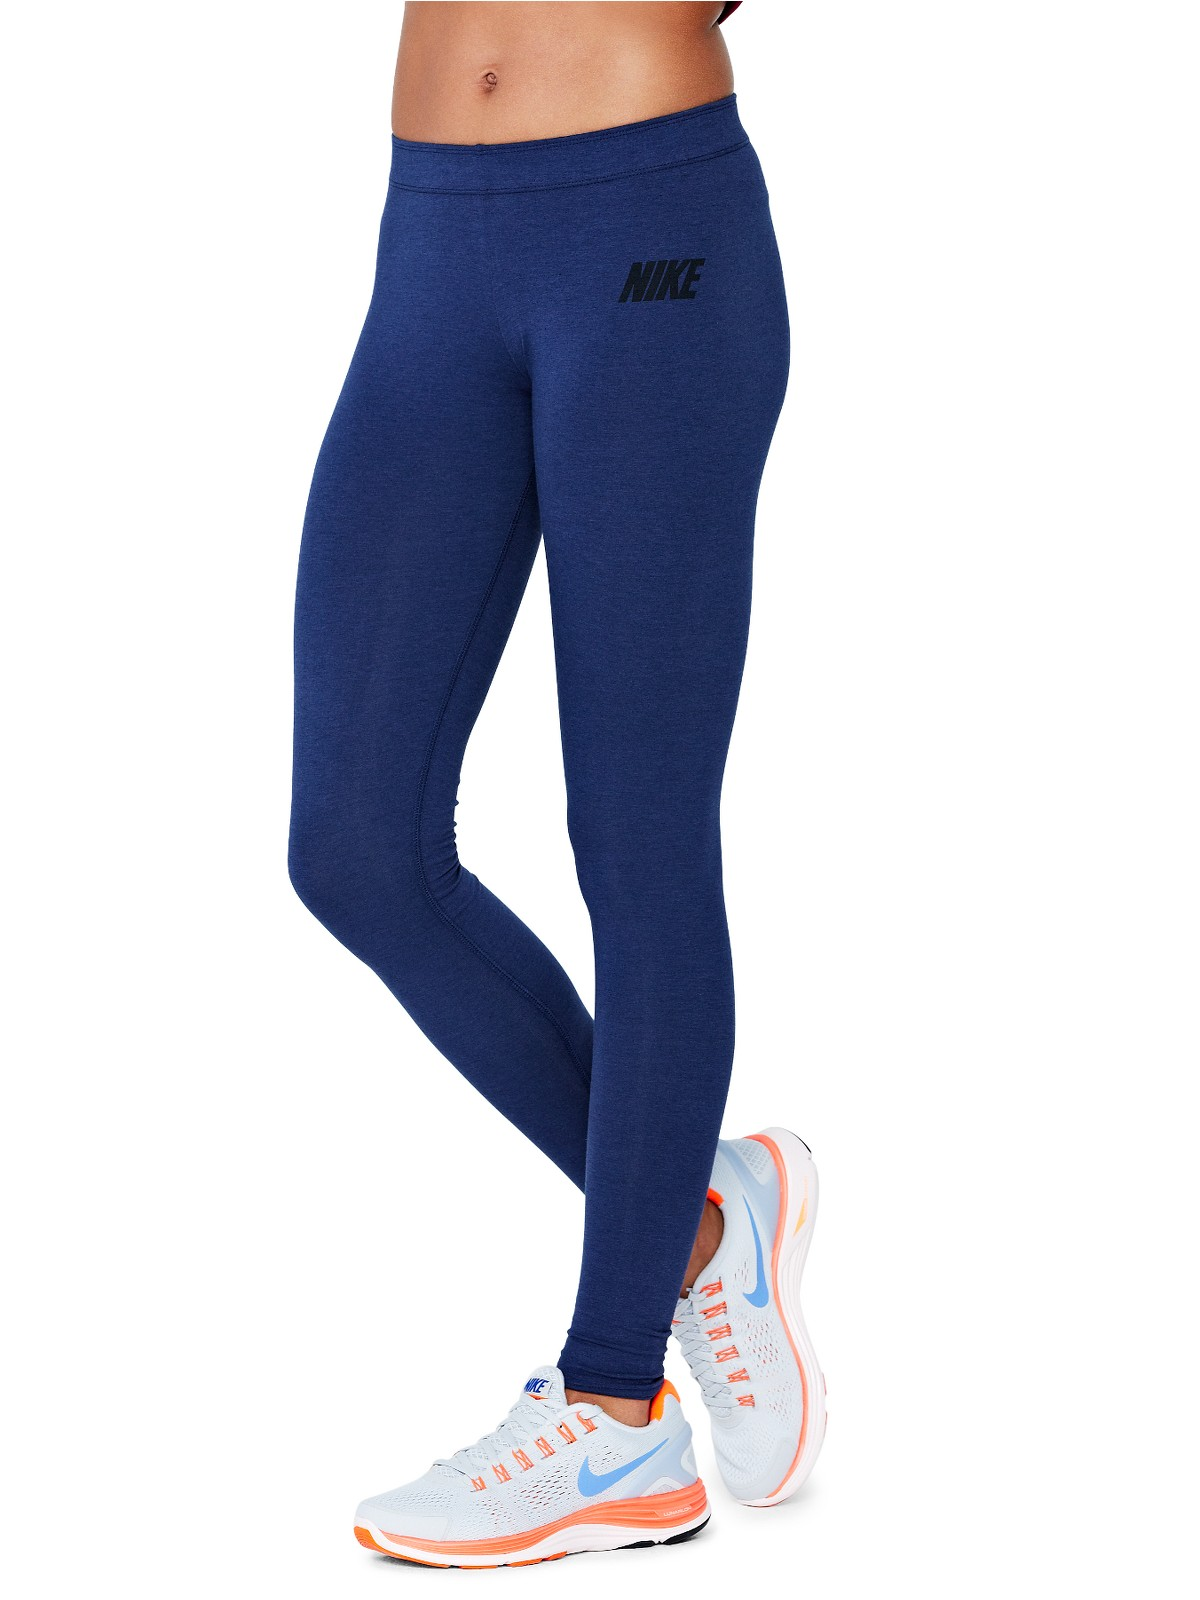 nike nike leg a see leggings in blue navy lyst. Black Bedroom Furniture Sets. Home Design Ideas